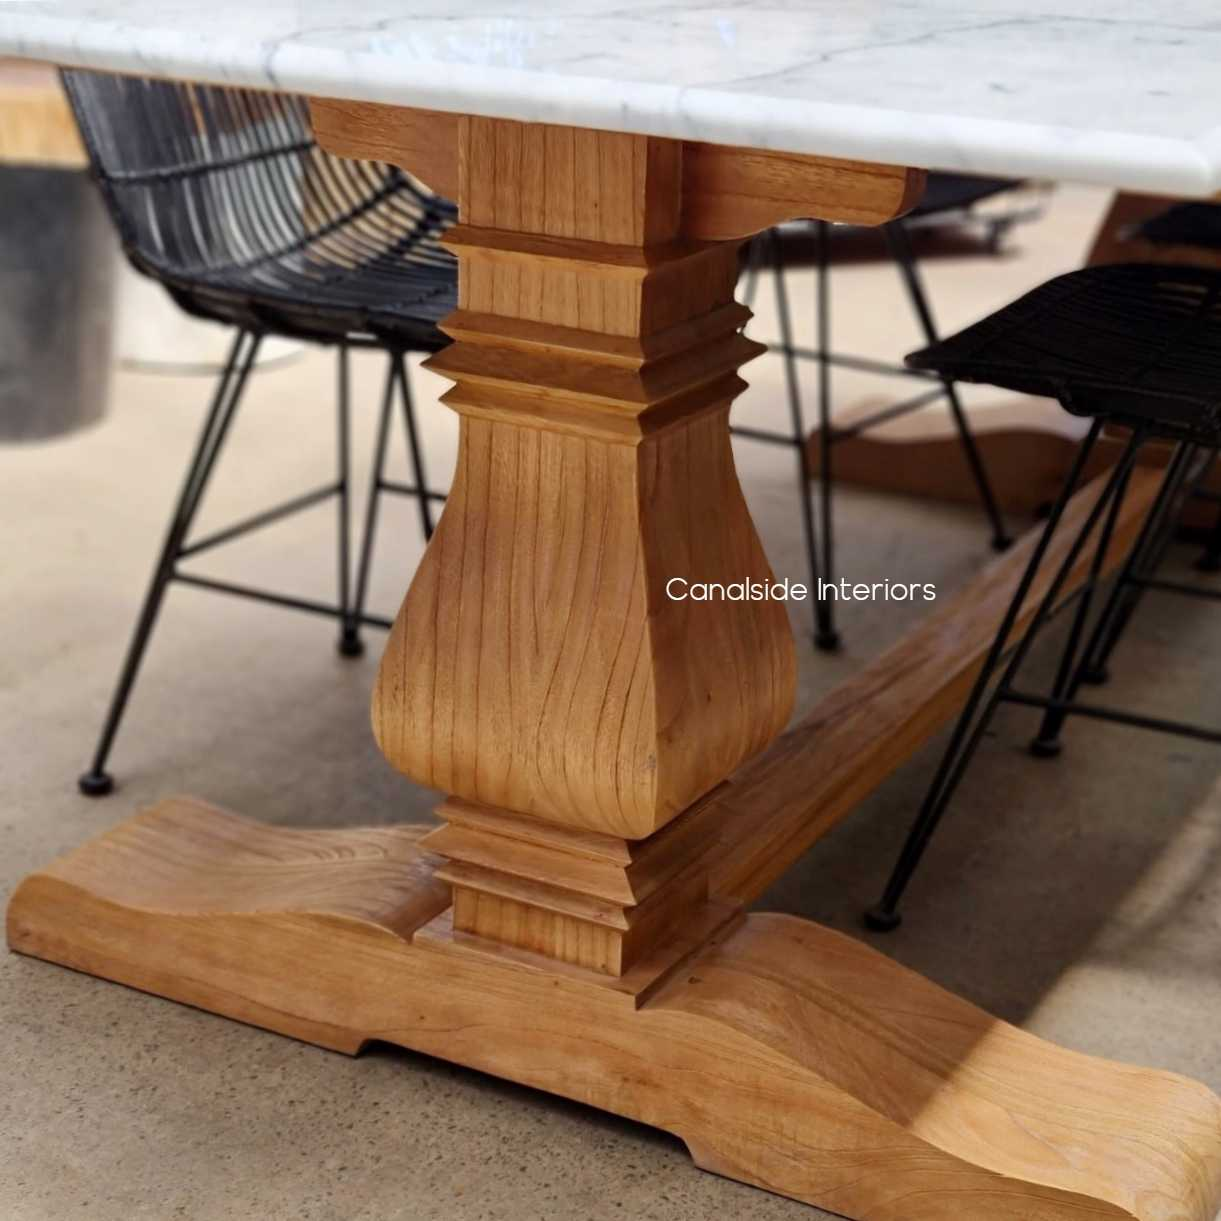 Heritage Pedestal Dining Table with Carrara Marble Top, Dining Table, tables, hamptons, hampton table, provincial, plantation, dining tables, trestle base, dining room, Marble, Carrara, Pedestal table, Marble Table,